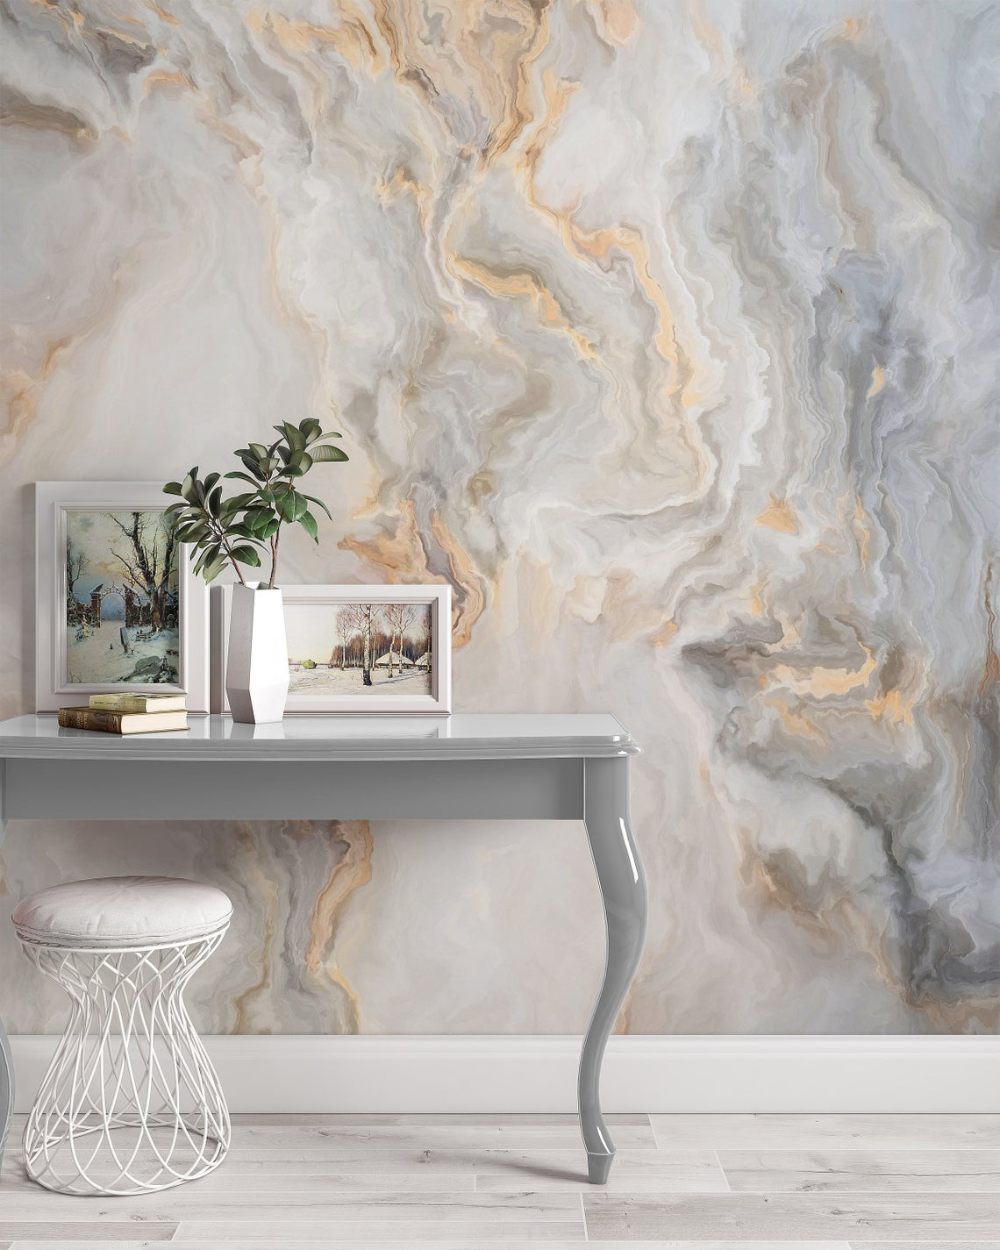 White Marble Pattern Curly Grey Golden Look Abstract Wallpaper Etsy Gold Abstract Wallpaper Gold Marble Wallpaper Marble Effect Wallpaper